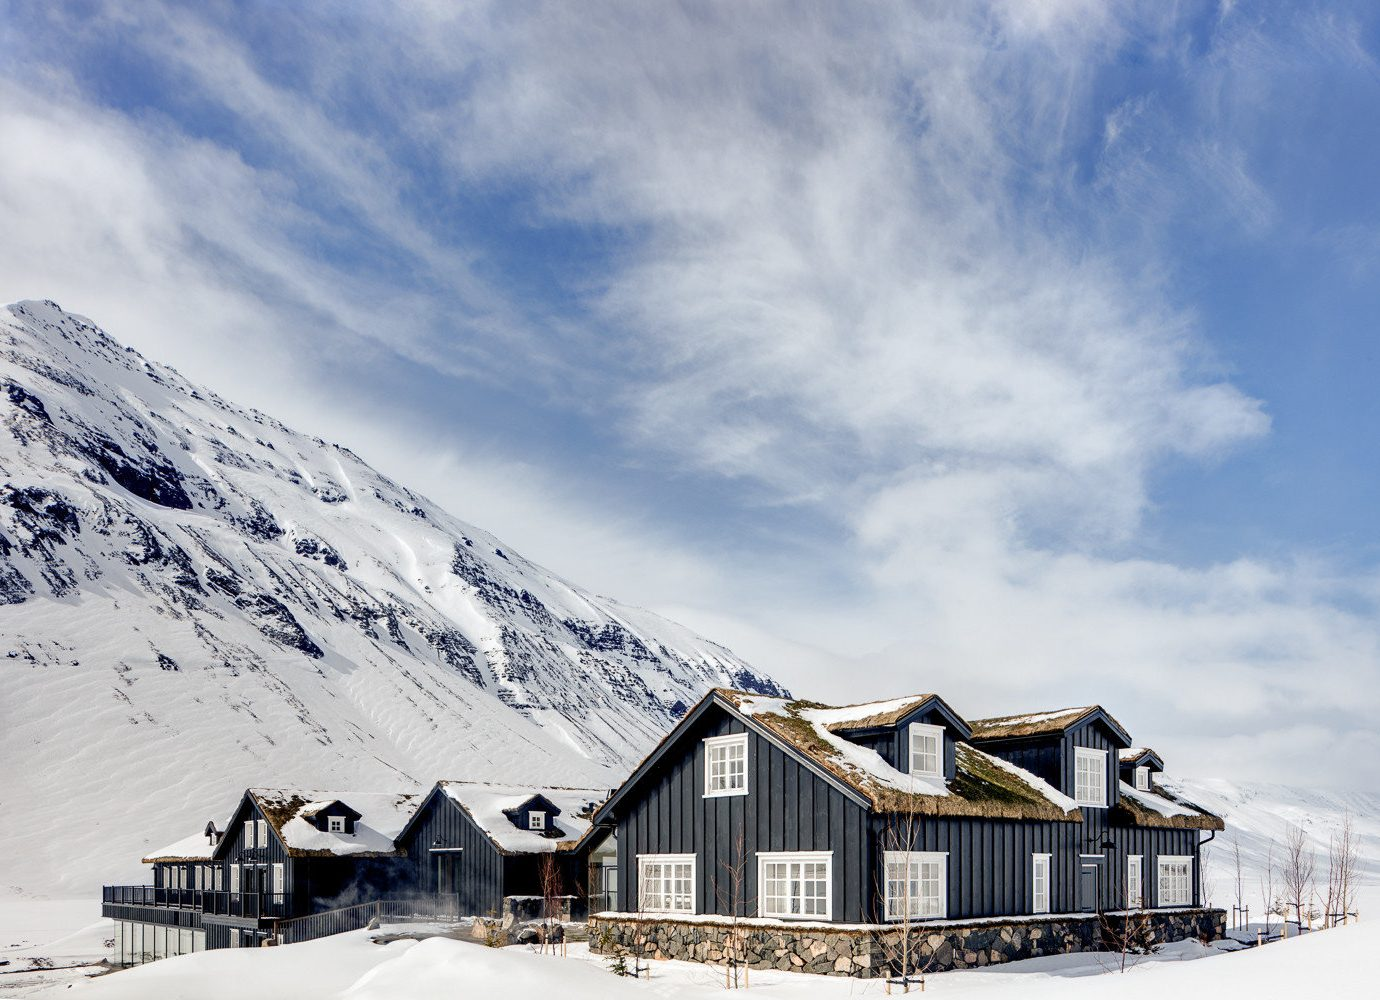 Boutique Hotels Hotels Outdoors + Adventure sky outdoor snow cloud Winter mountainous landforms mountain range mountain arctic alps house log cabin freezing home glacial landform hut elevation meteorological phenomenon fell landscape ice cottage tree roof day